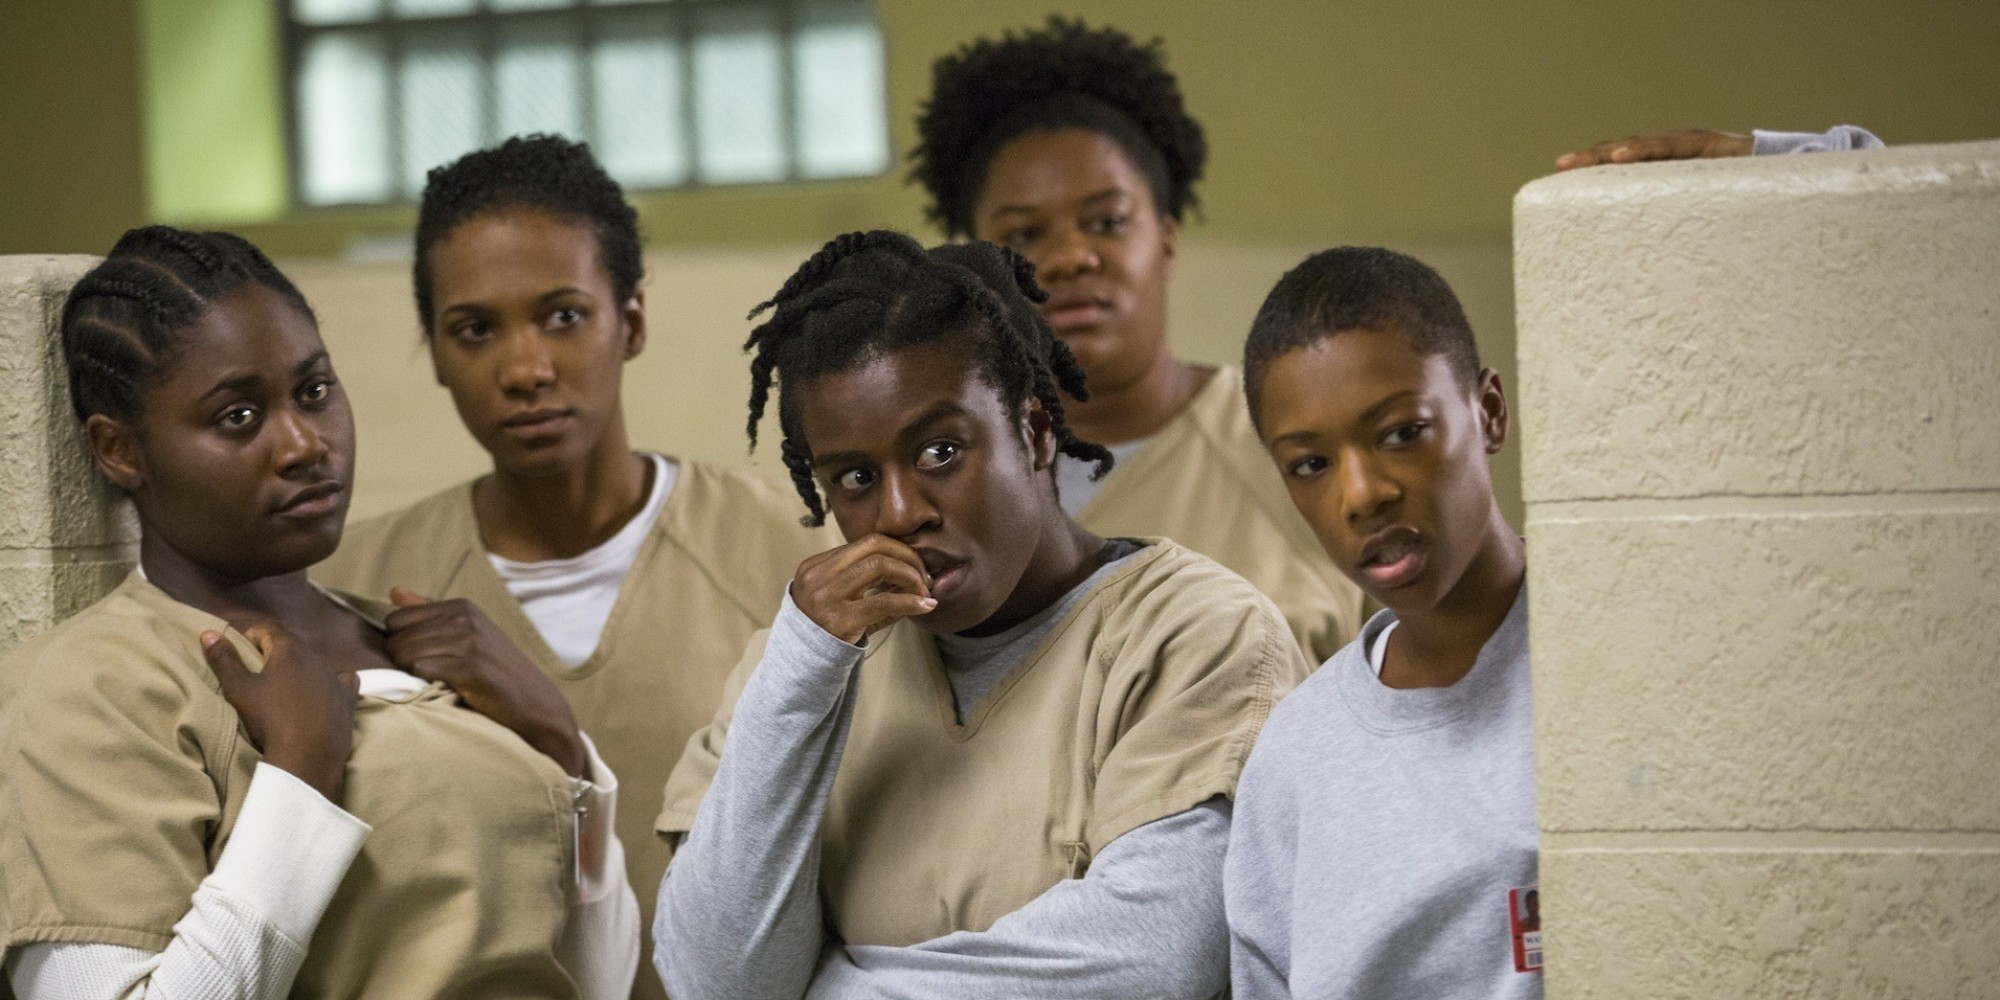 'Orange Is The New Black' Season 2 Review: The Rage Under ... White Girl With Cornrows Orange Is The New Black